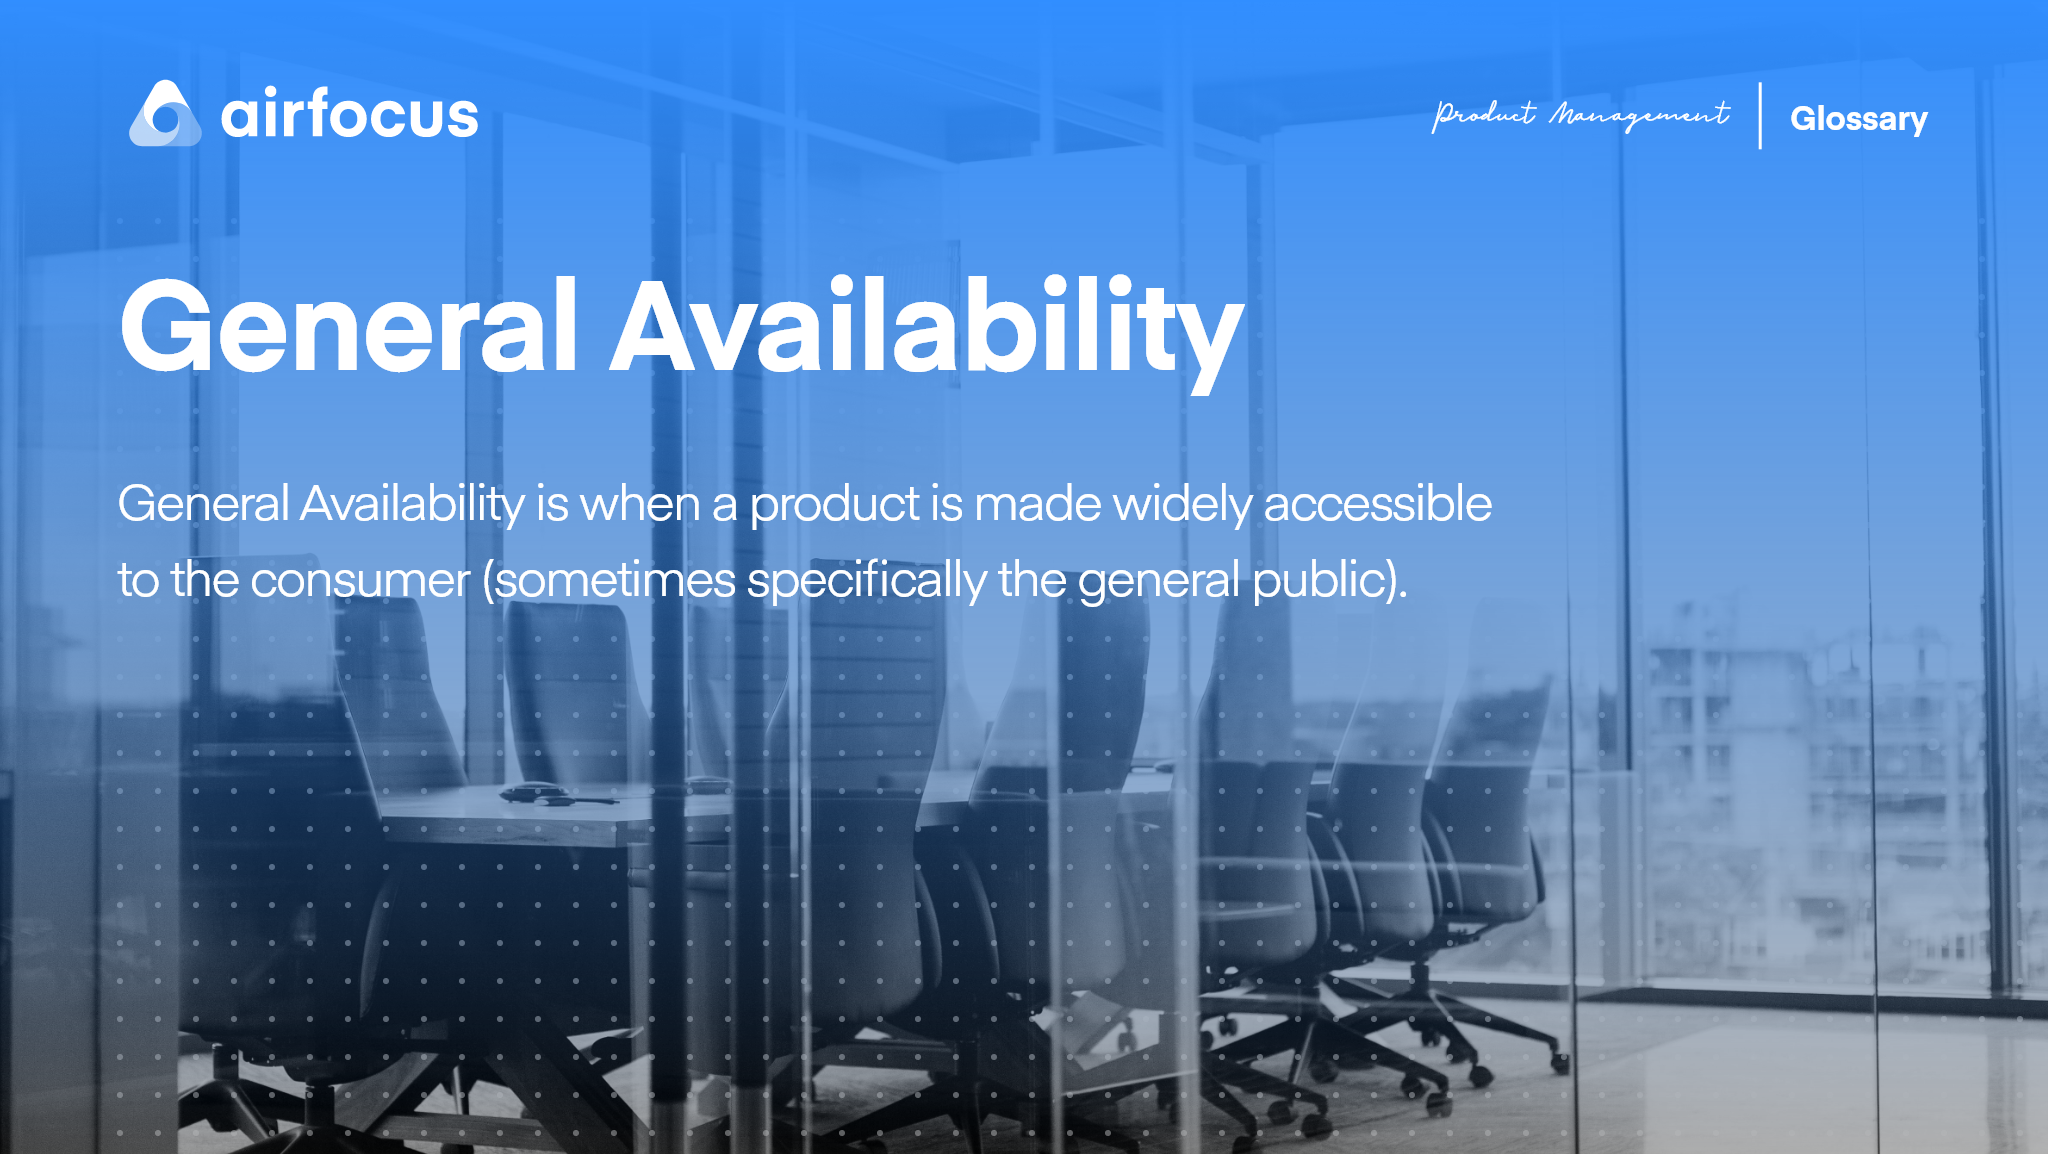 What is General Availability?